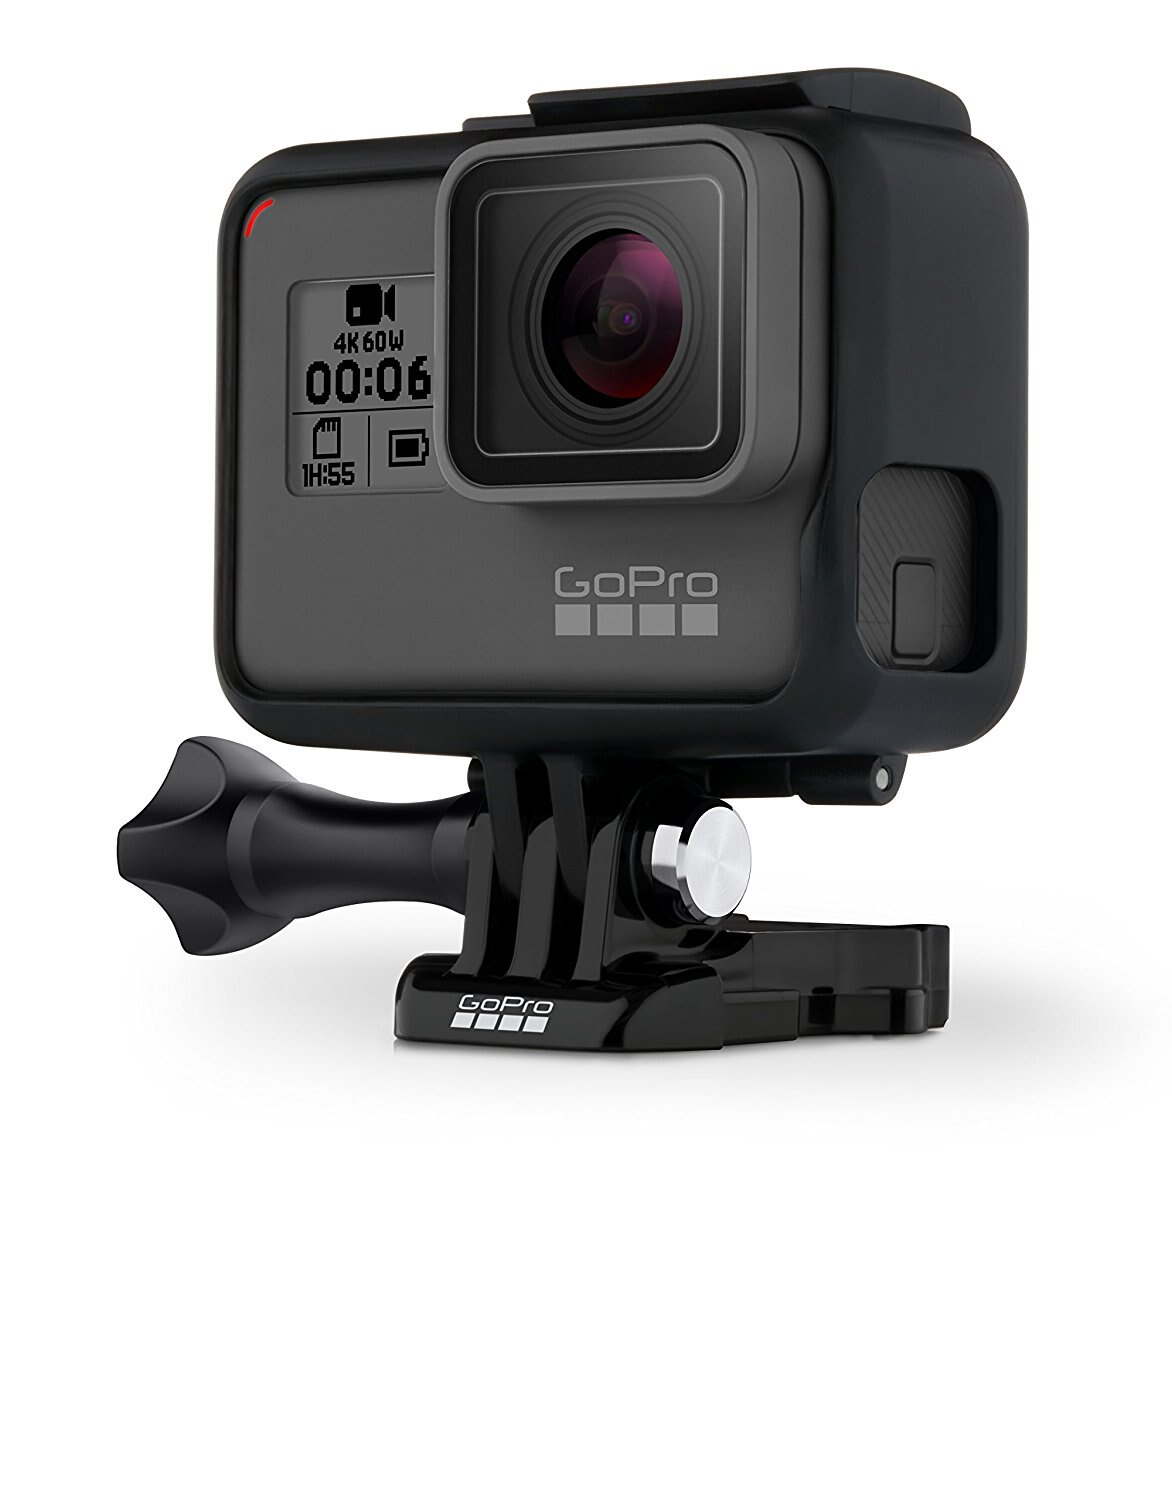 GoPro HERO6 Black Ultra HD Action Camera - 4K 3